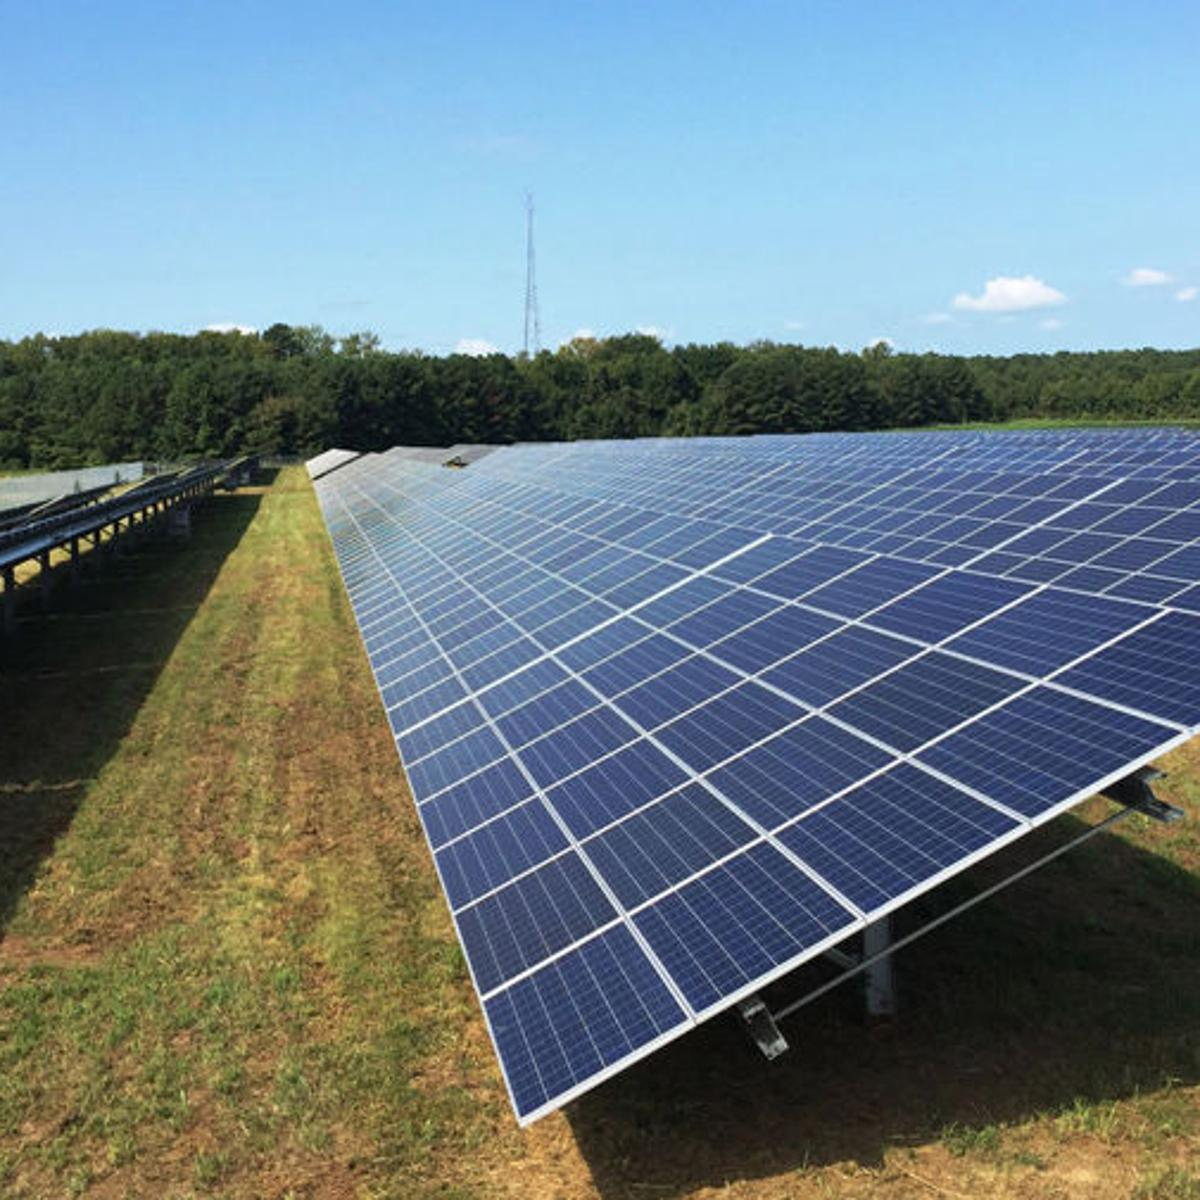 Solar farm proposed for Hanover County | Hanover County